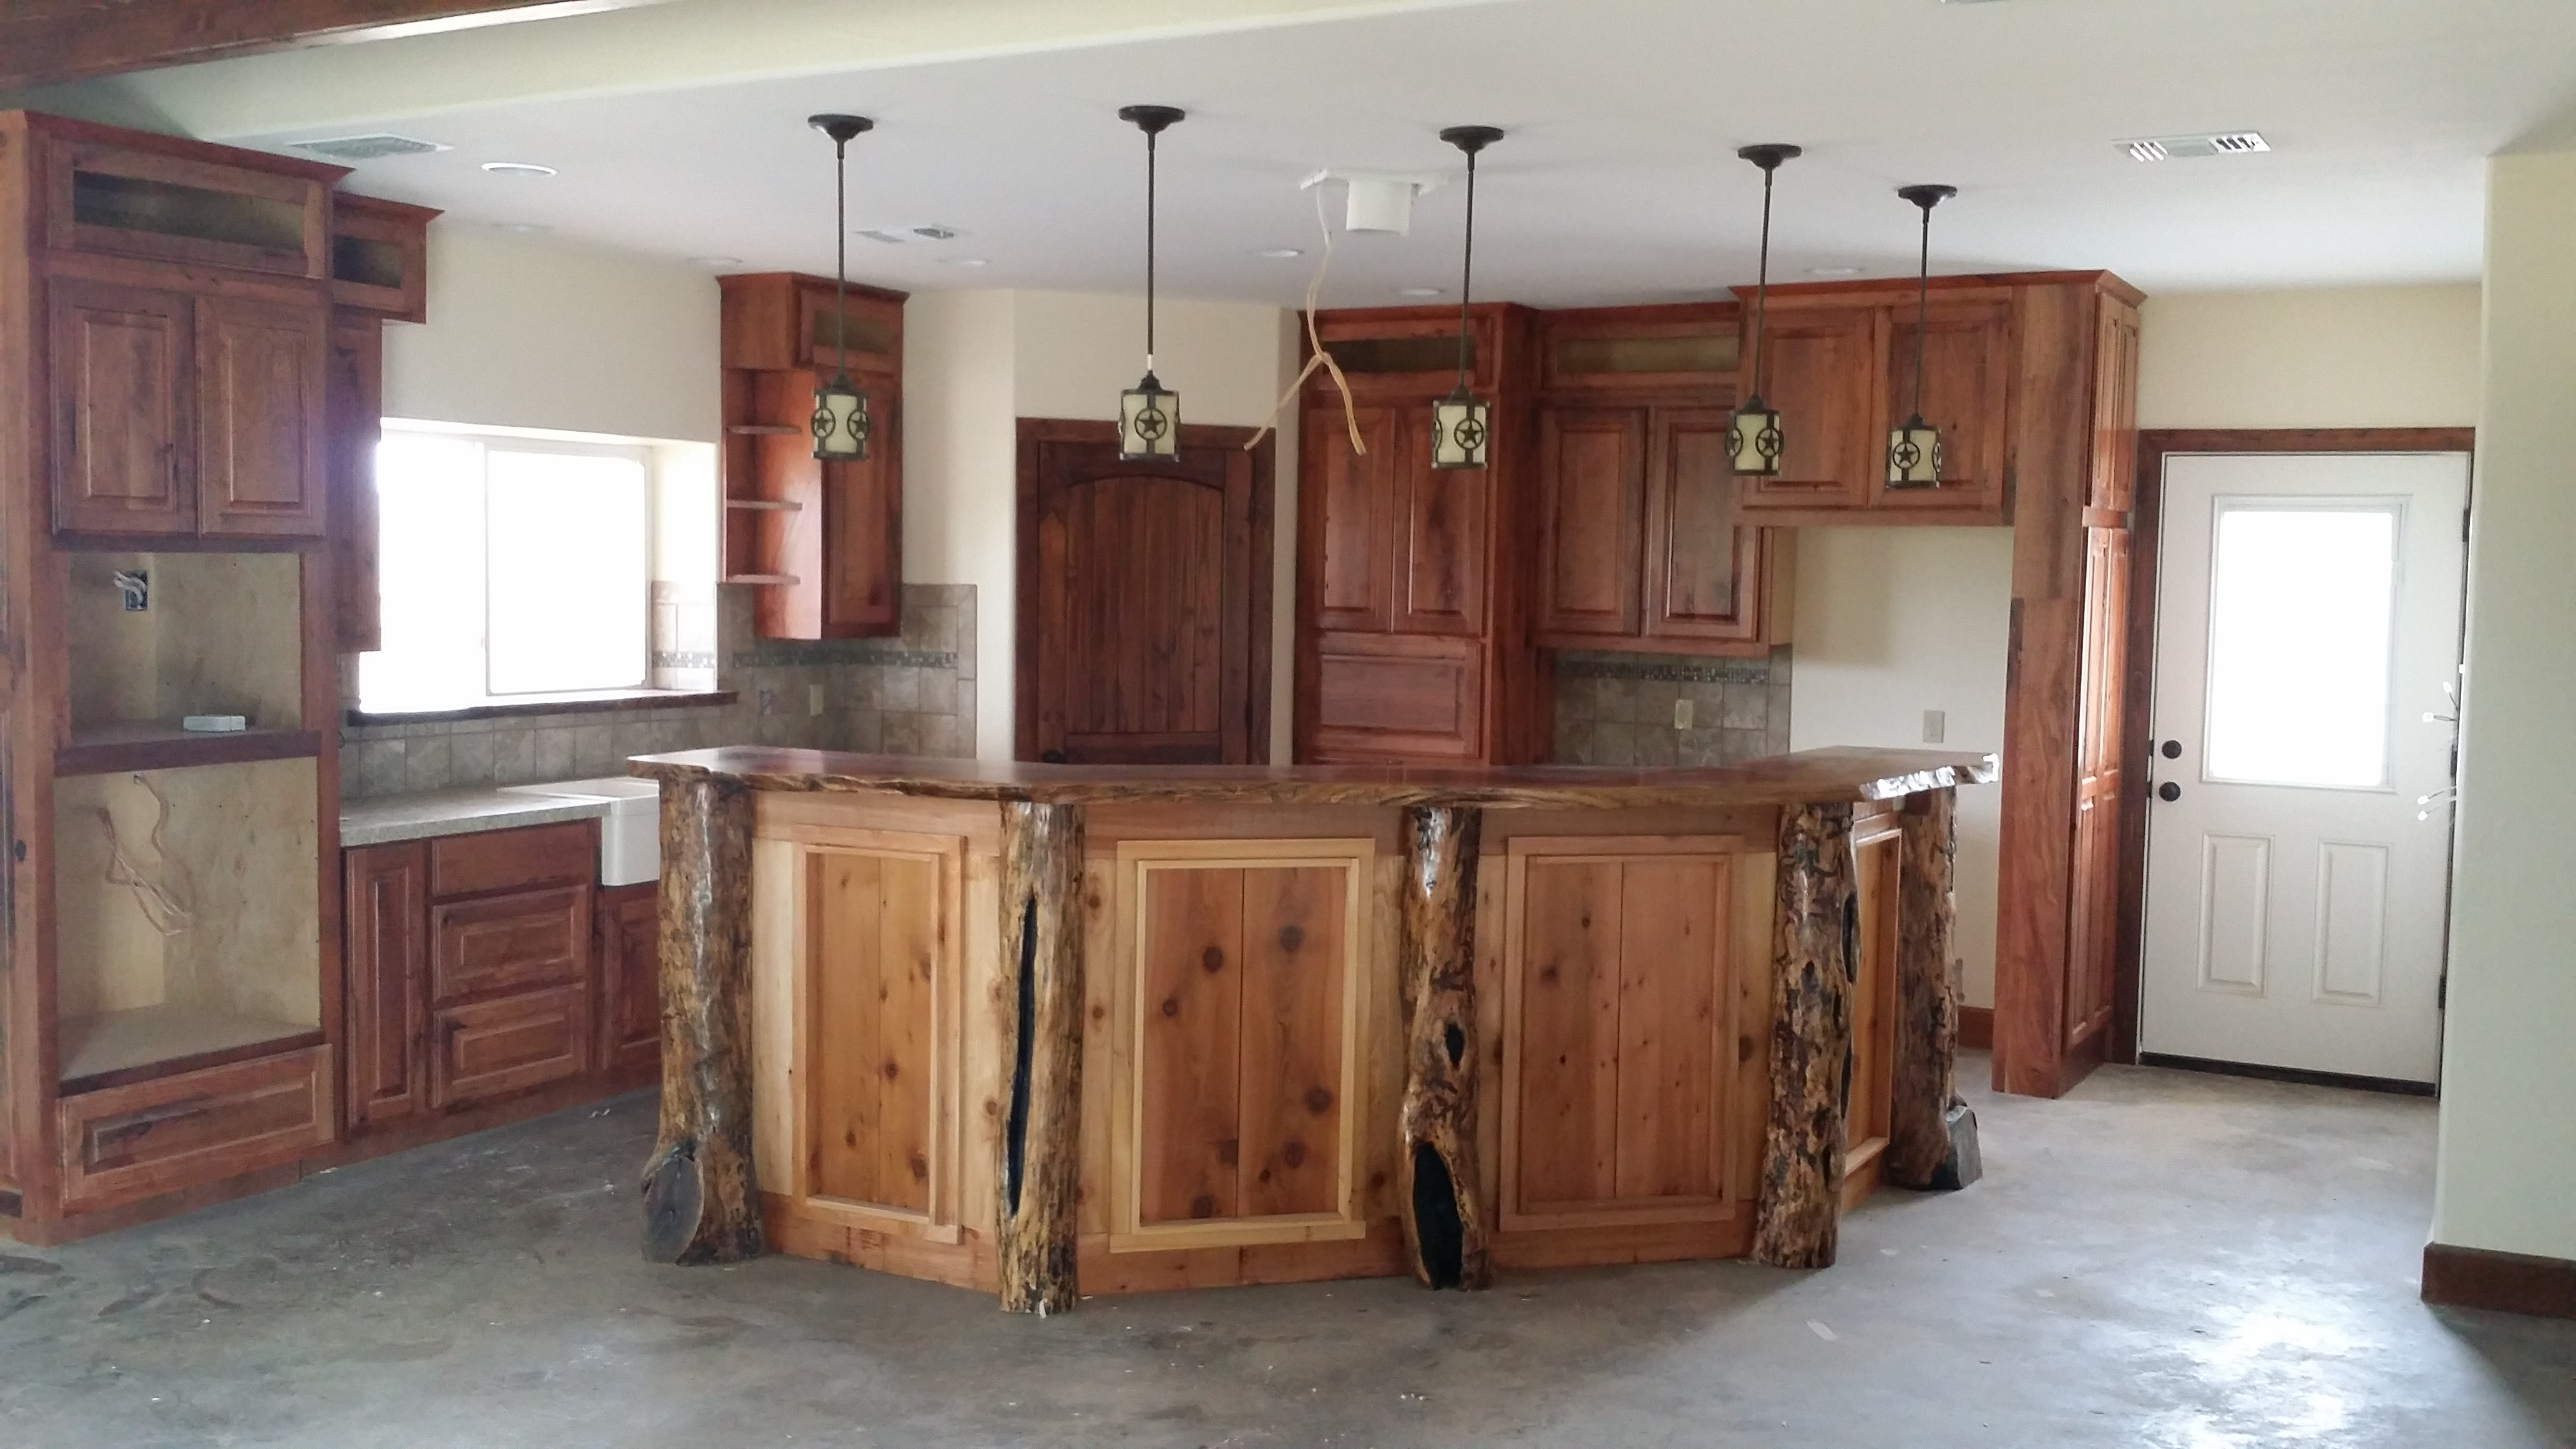 kitchen cabinets tucson south jersey remodeling cabinet makers matttroy